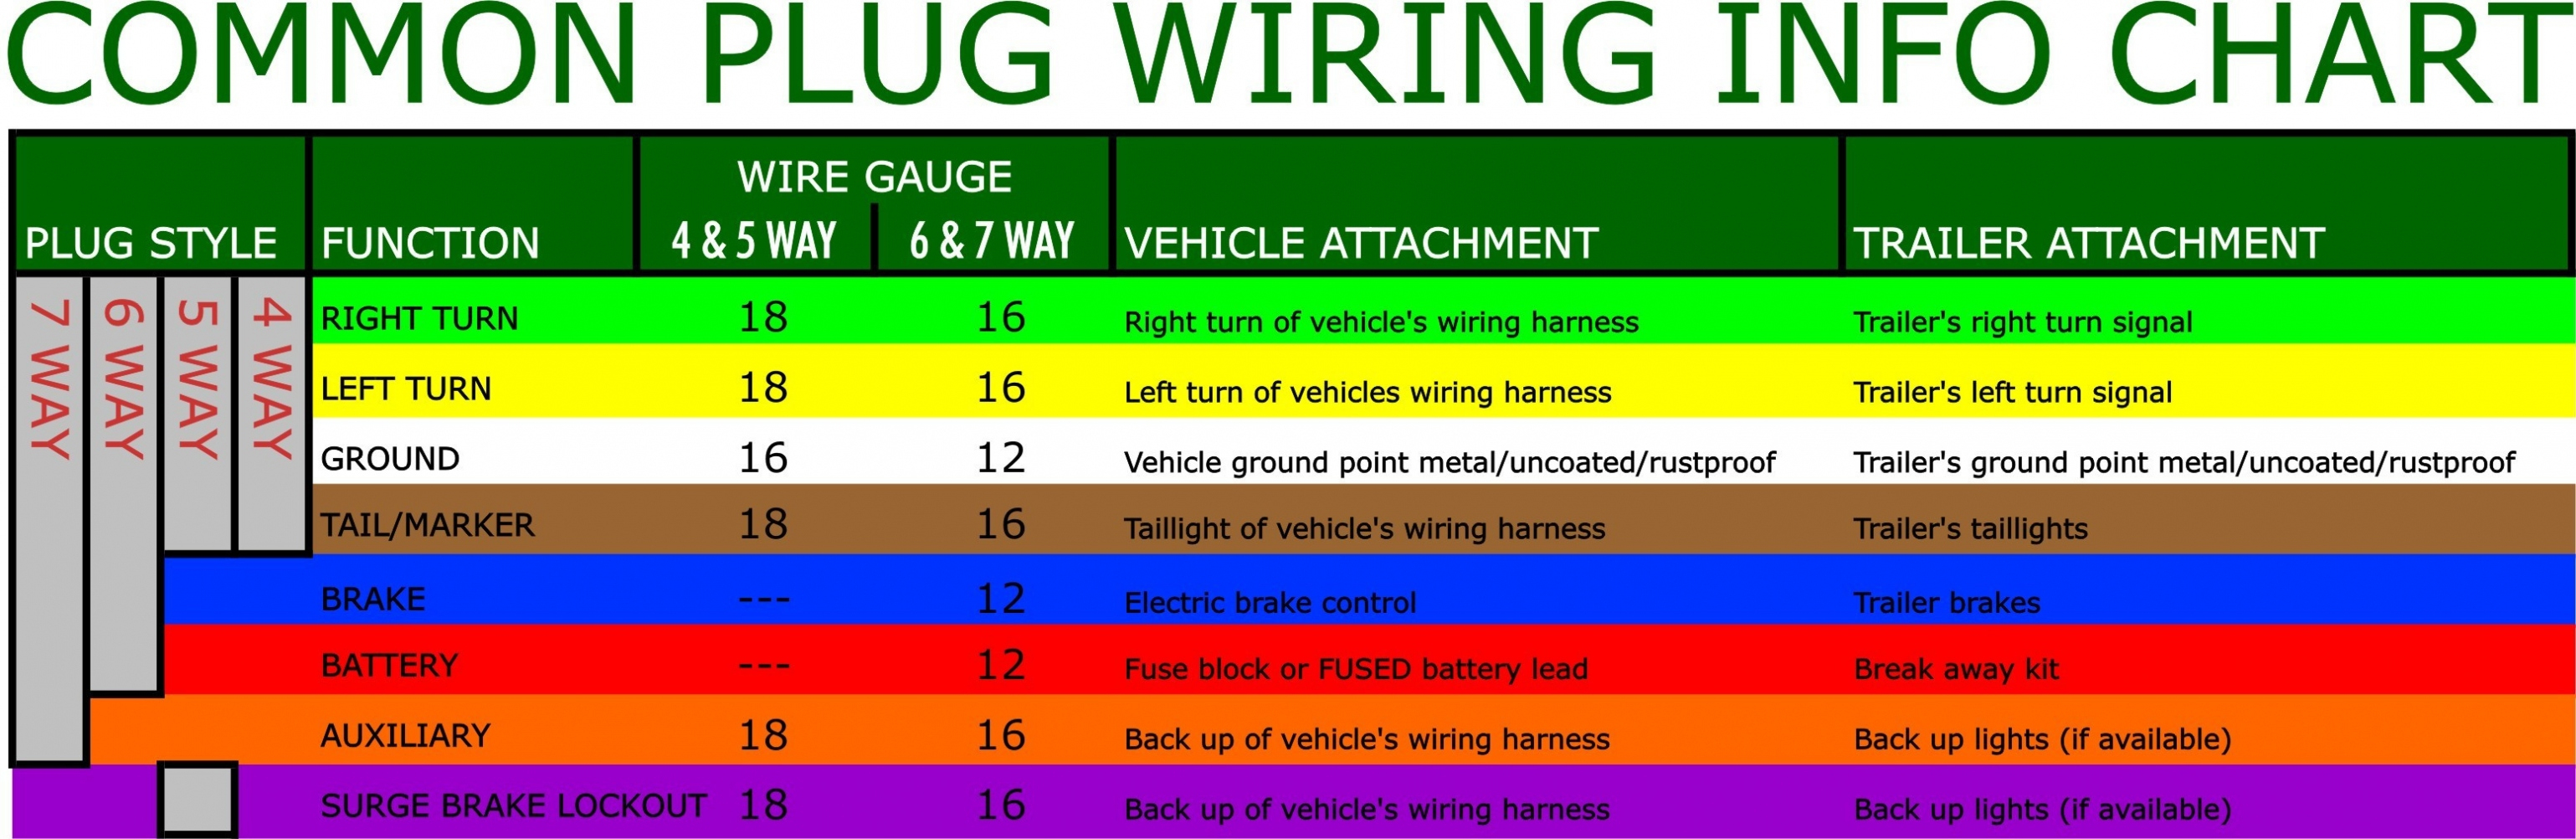 Wiring Diagram For 7 Pin Round Trailer Plug New Wiring Diagram 7 Pin - Trailer Wiring Diagram 4 Pin